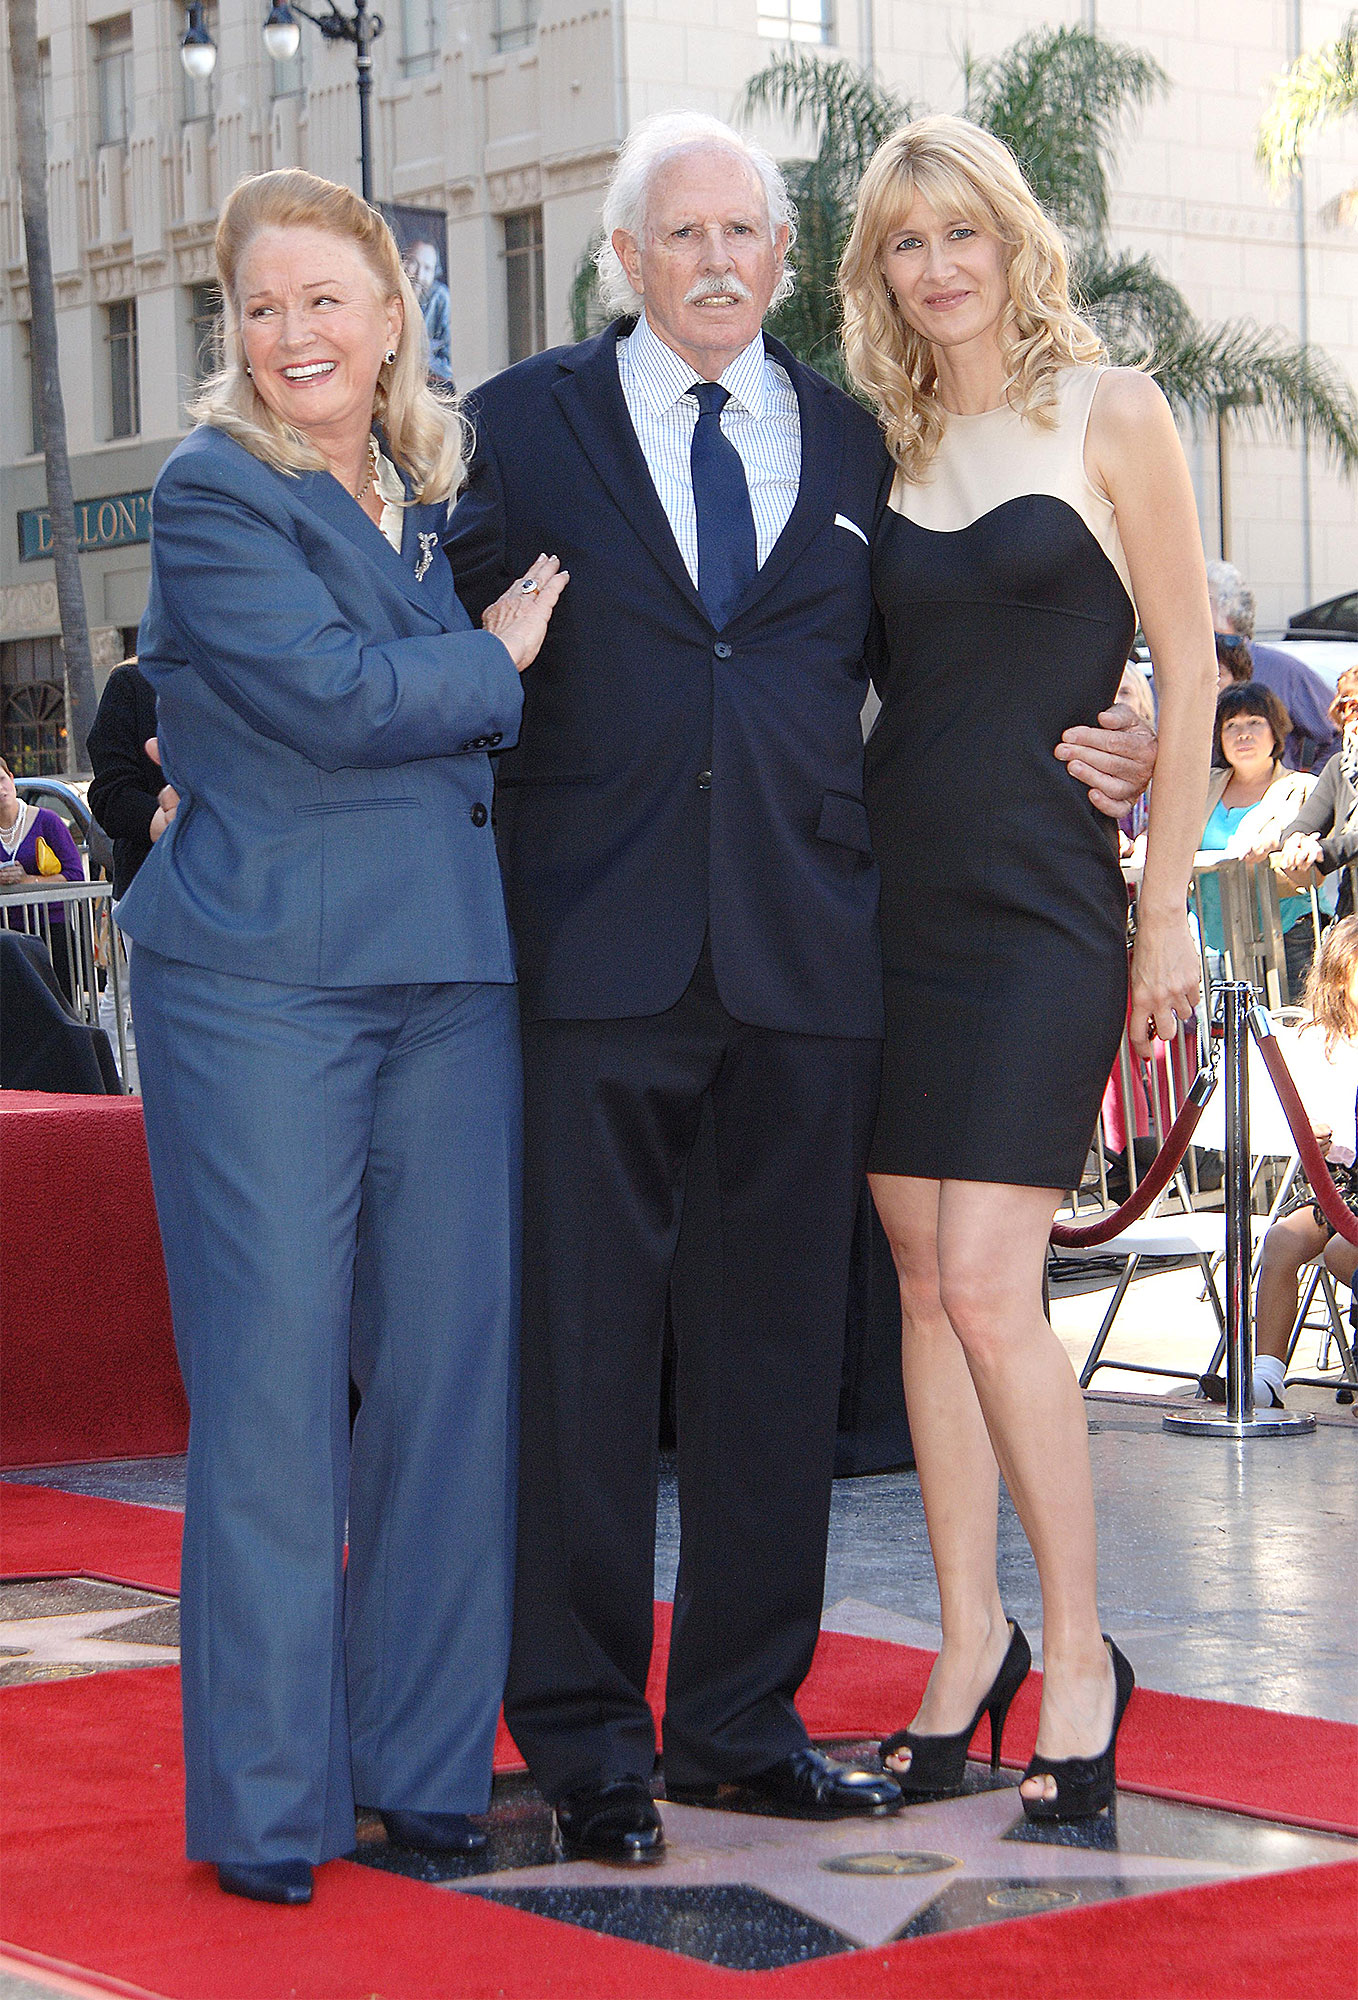 Bruce Dern, Laura Dern and Diane Ladd Honored With Stars On The Hollywood Walk Of Fame, Los Angeles, America - 01 Nov 2010